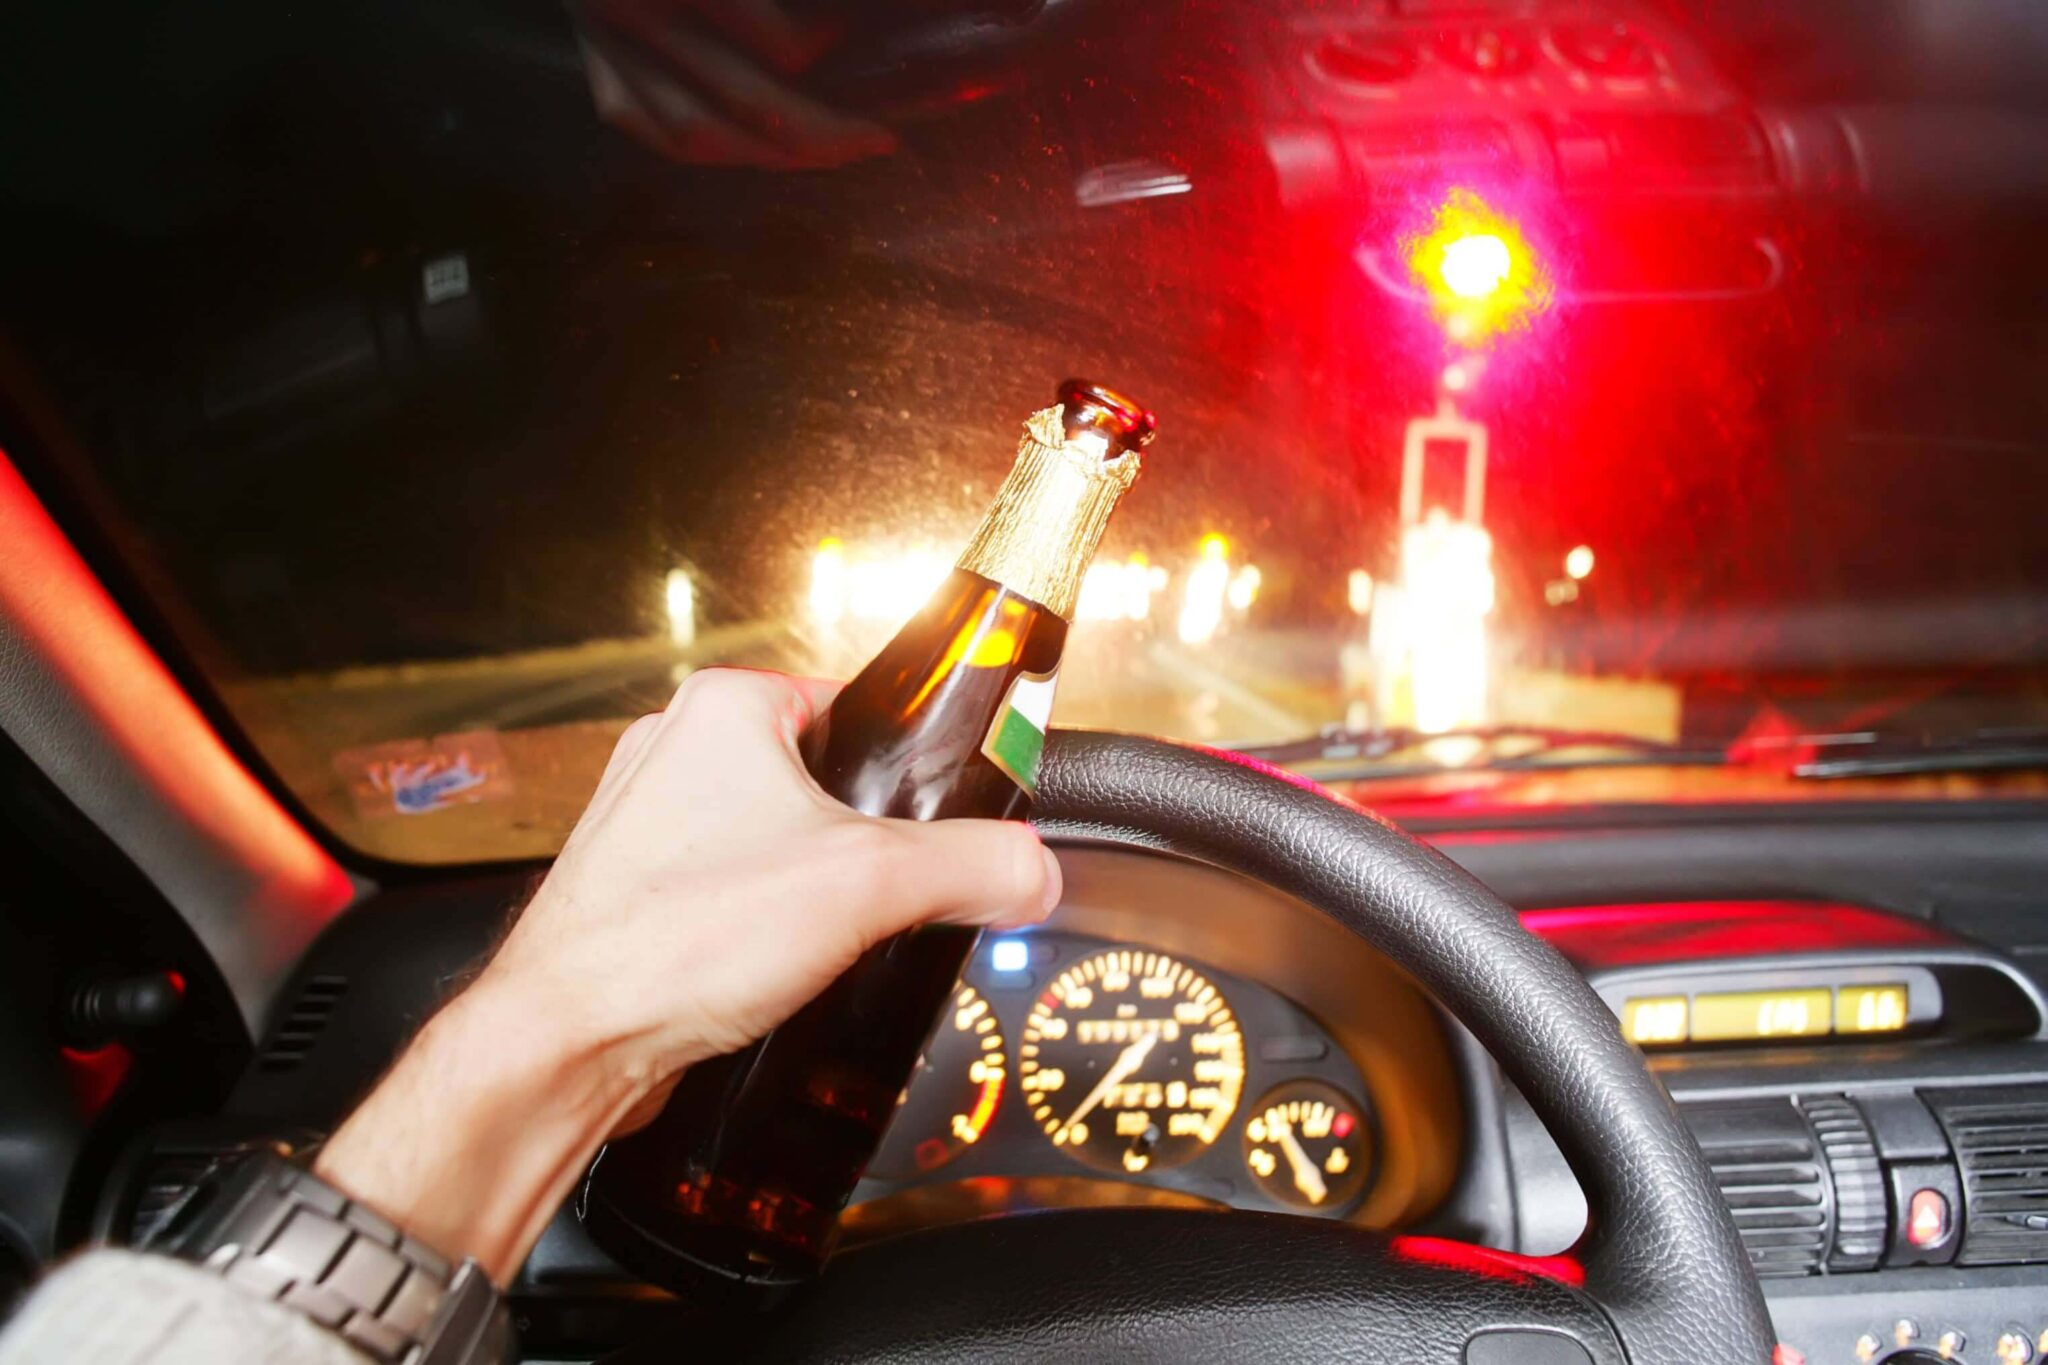 view of a steering wheel with driver's hand on it holding a beer